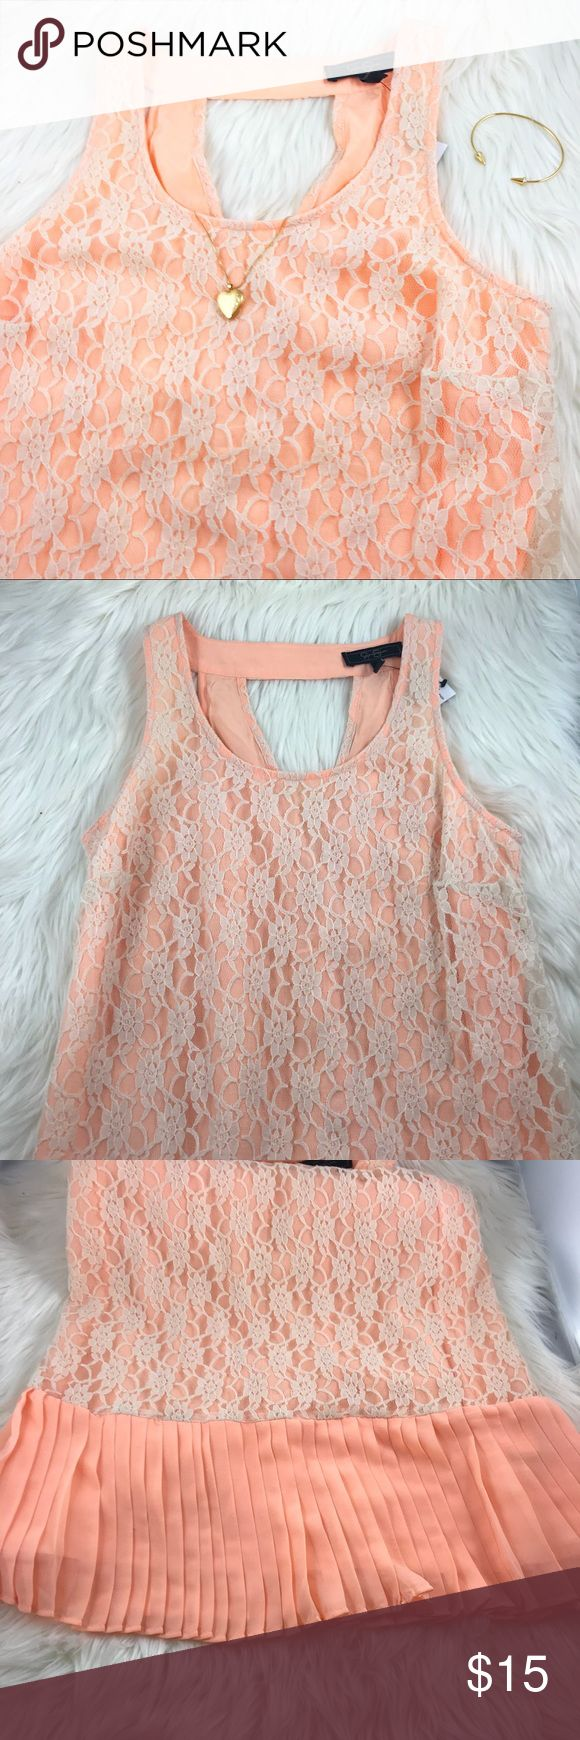 """🆕 10/24 - BNWT Jessica Simpson Peach Lace Dress First photo shows color enhanced since lighting tends to wash it out. It's a bright peach color. Like a neon or highlighter color. Brand new with tag. Gladys Preach Nectar. They call the Lace Smokey grey but it's more of an off white. Ruffle bottom hem. 34"""" bust, 25.5"""" from underarm to hem. No zipper. This listing is for the dress only. Jessica Simpson Dresses Midi"""